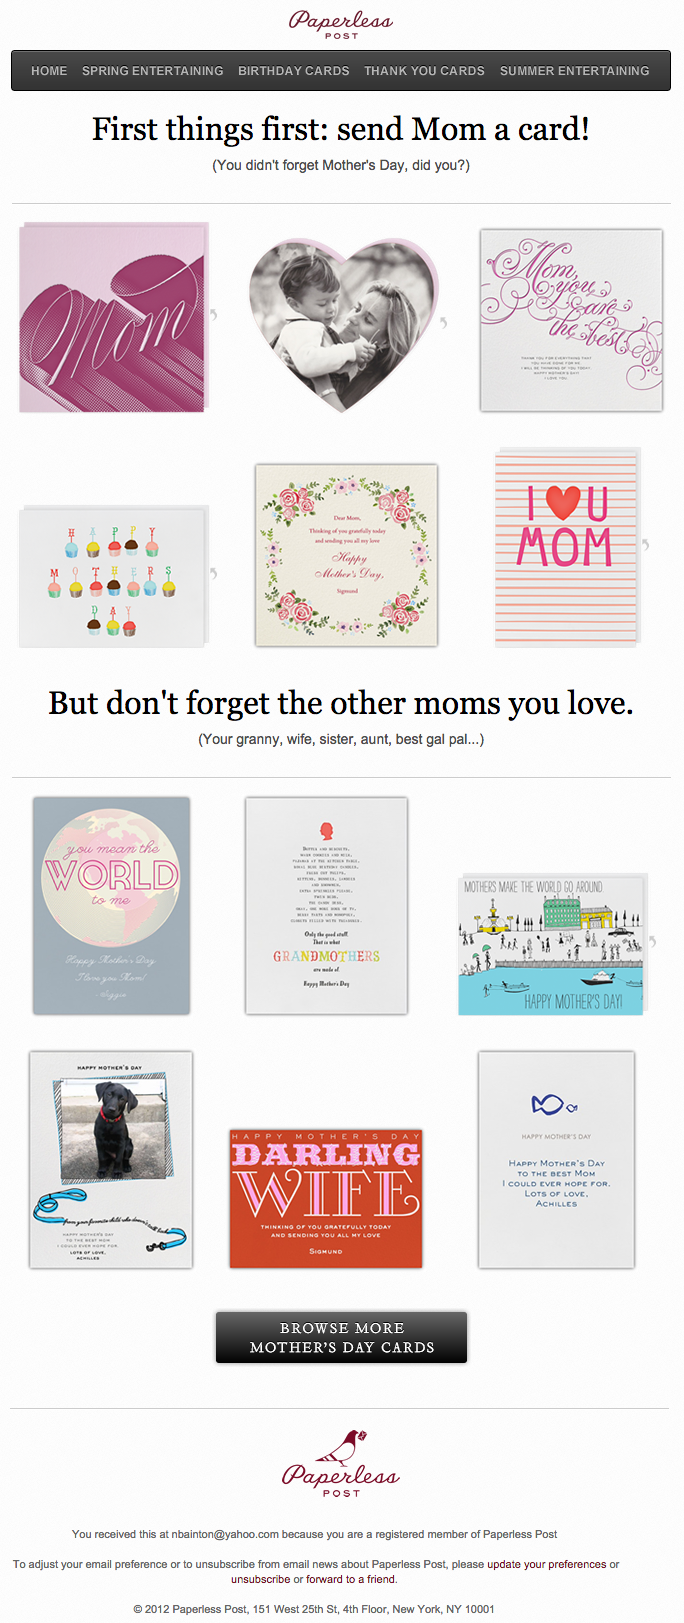 Example of a Paperless Post email marketing campaign on Mother's Day